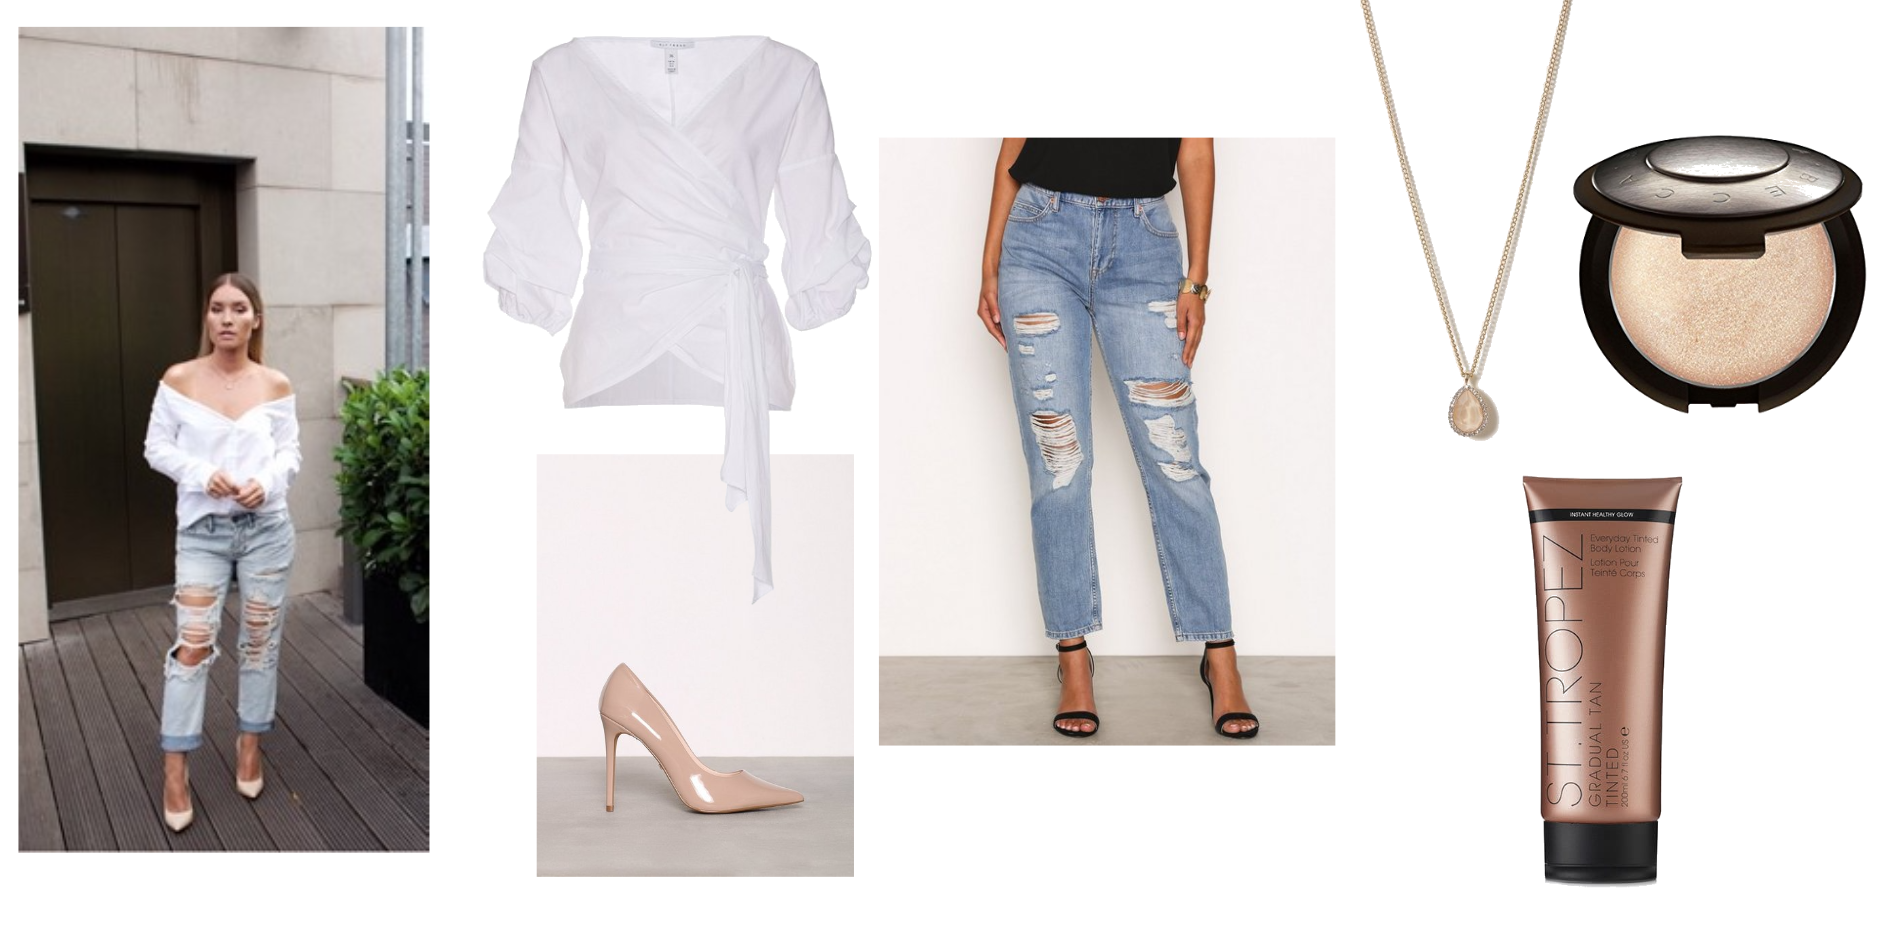 STYLE COPY - MIT ILLUM ROOFTOP DINNER OUTFIT